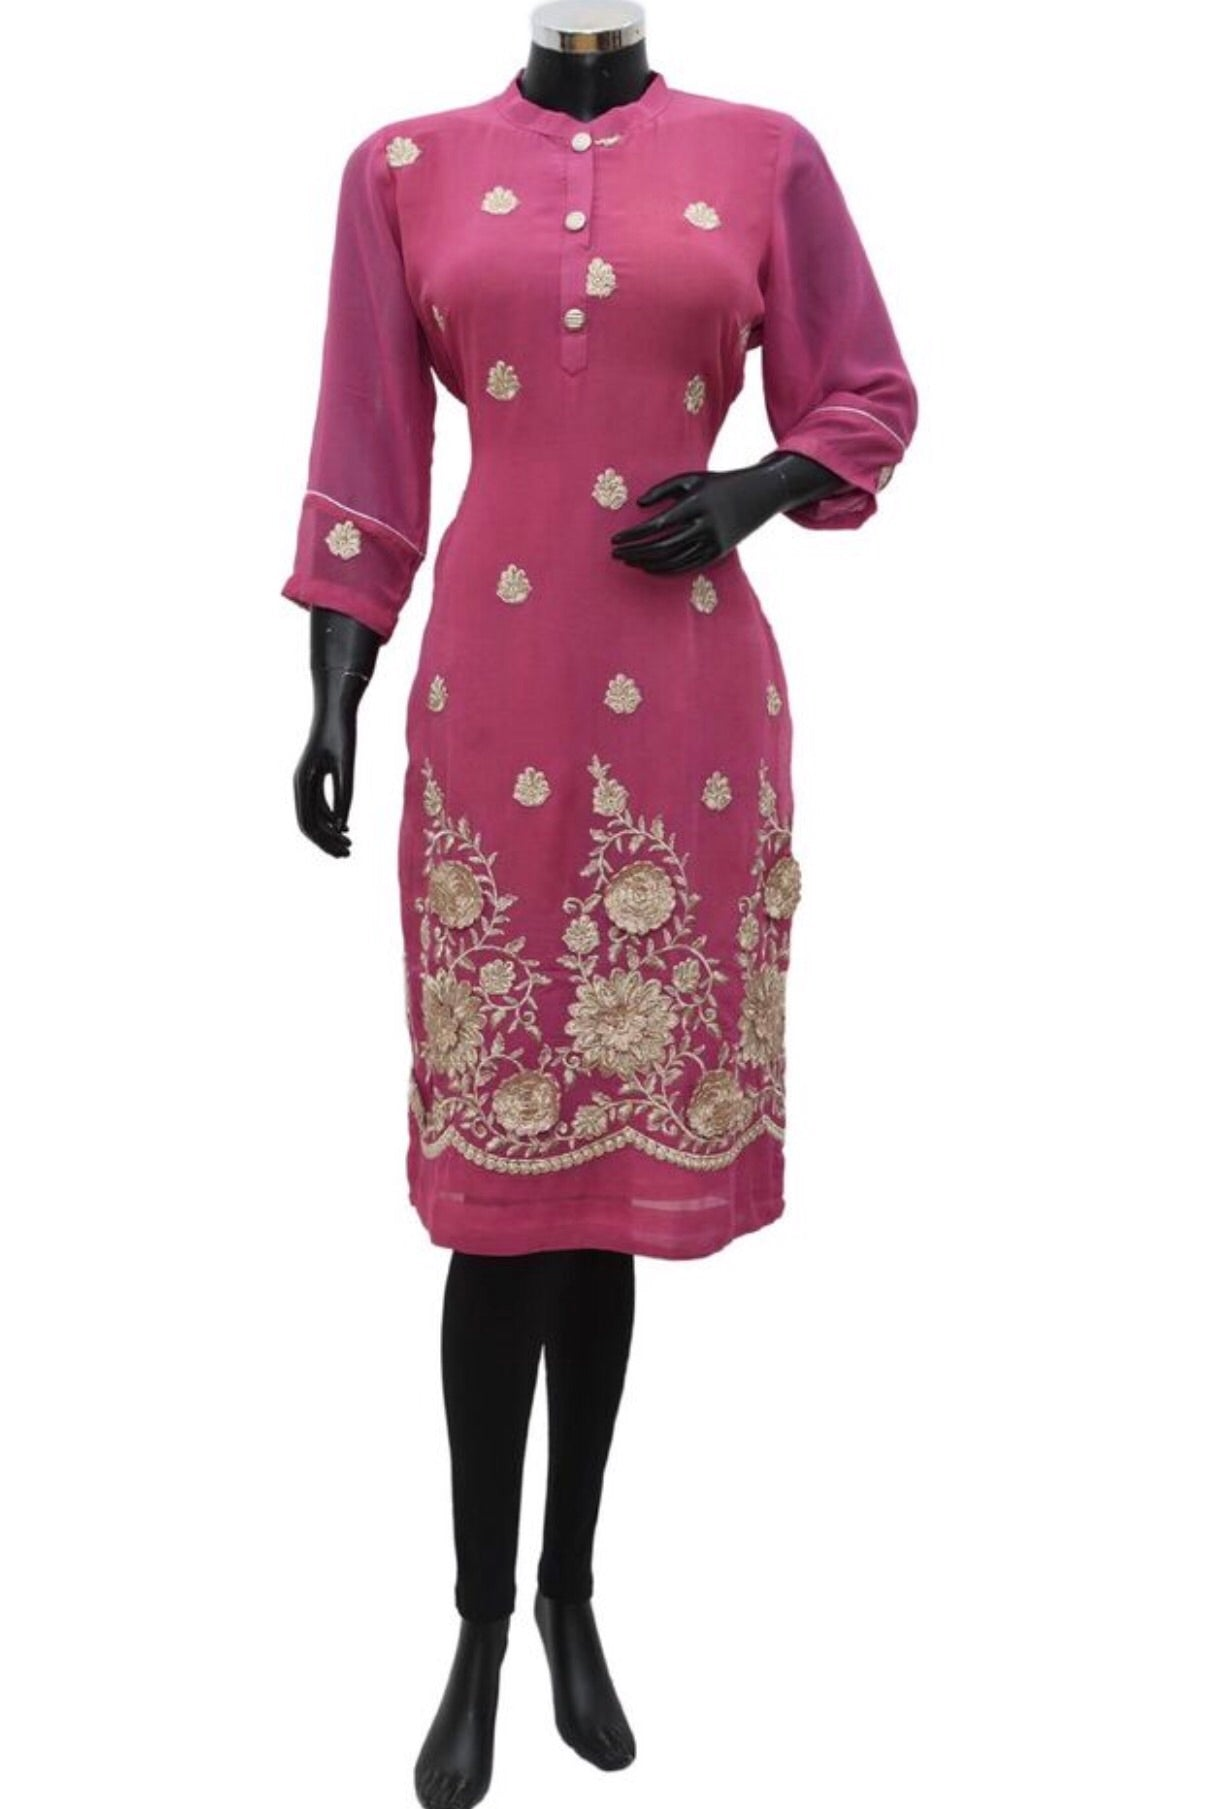 Embroidered long top #fdn838-191